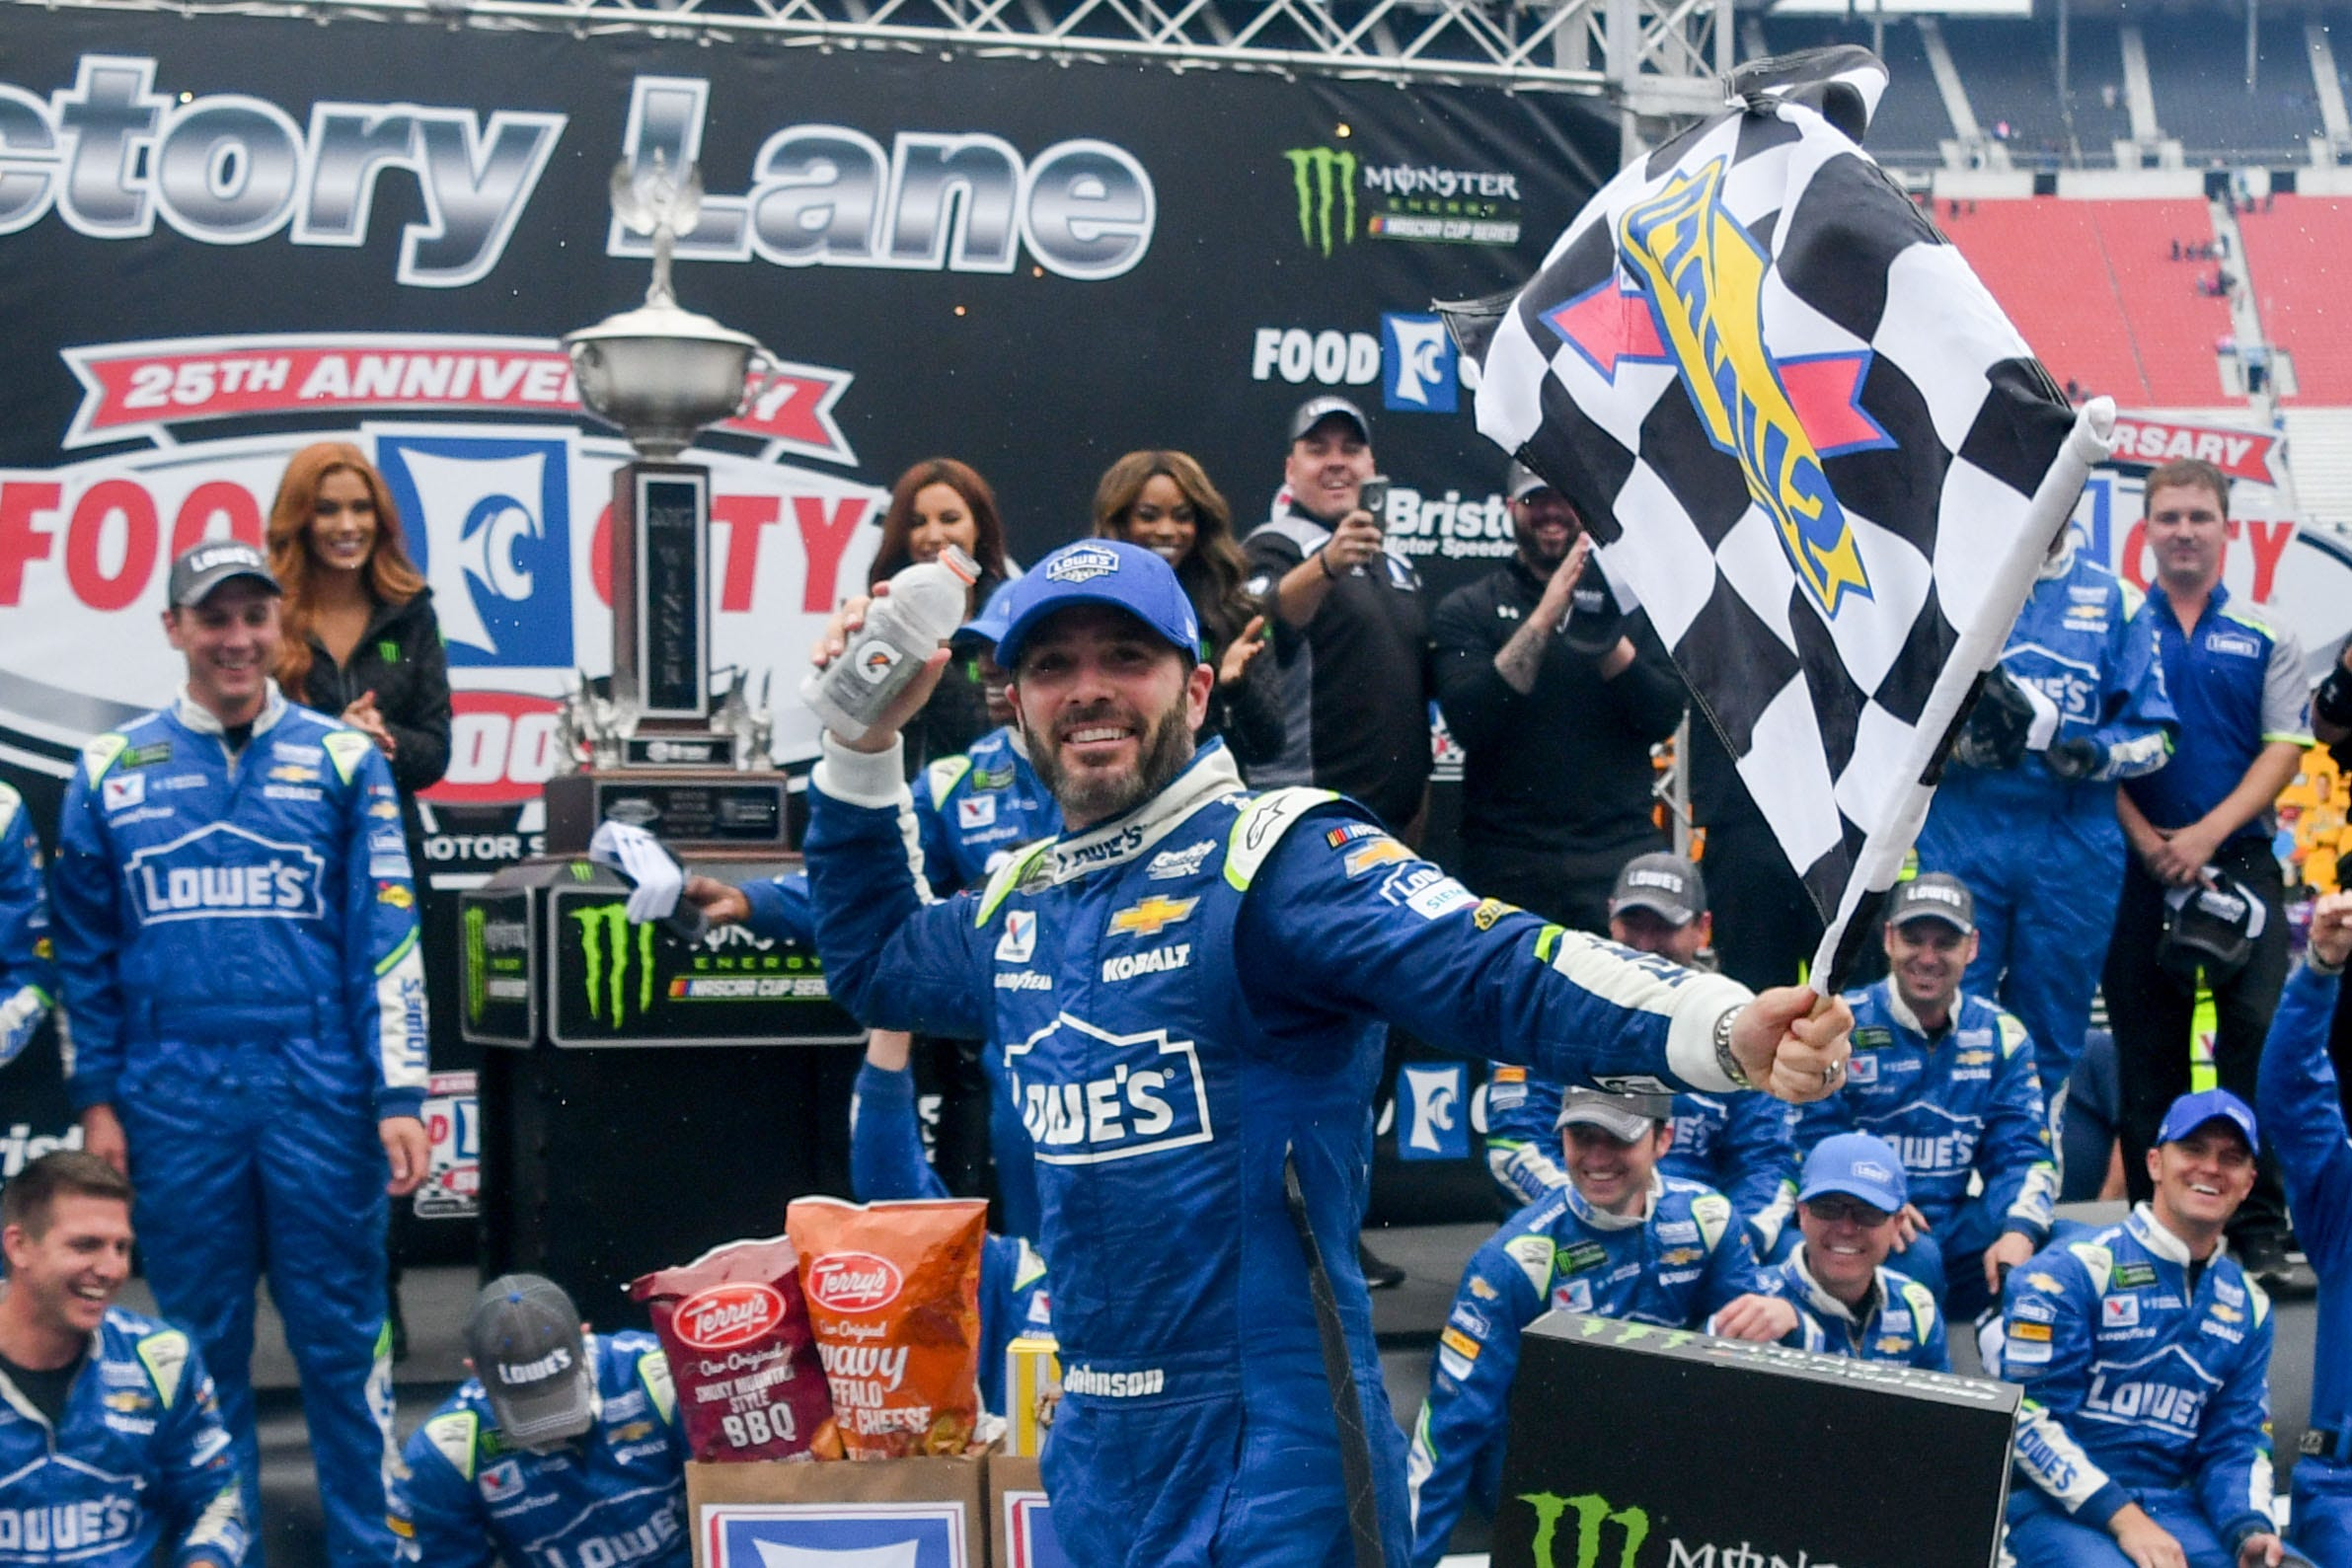 http://www usatoday com/picture-gallery/sports/nascar/2017/05/06